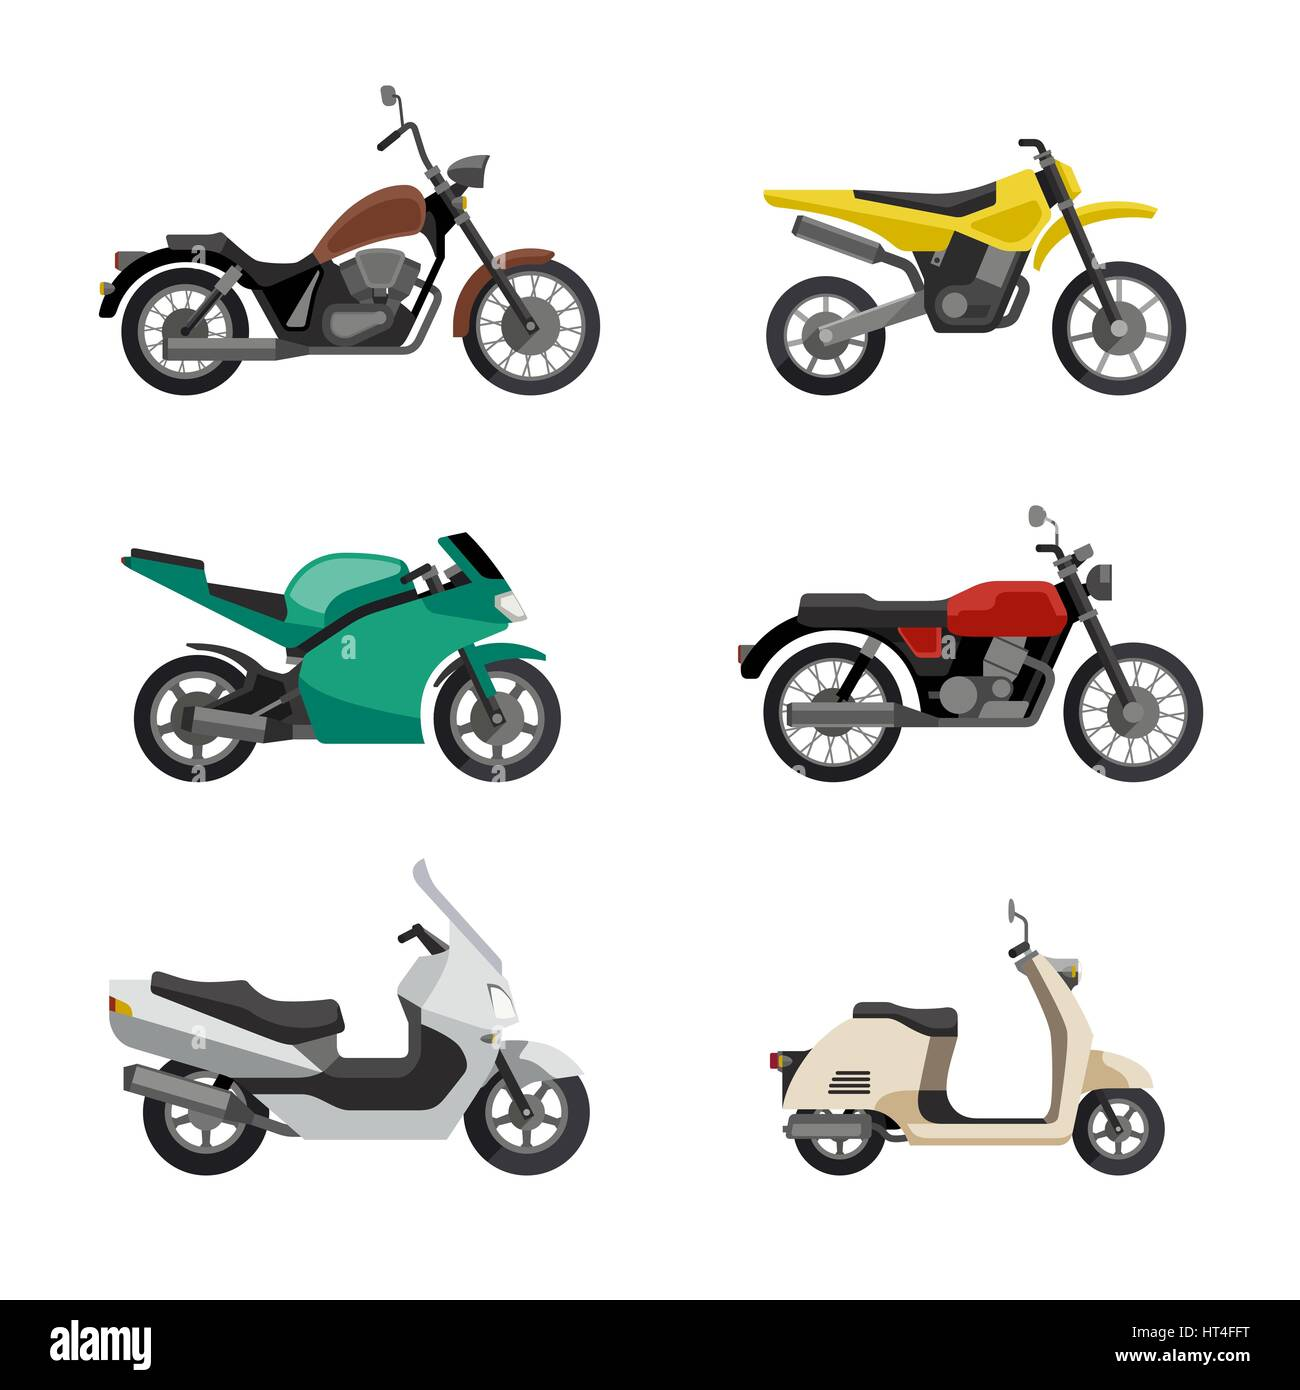 Motorcycles and scooters - Stock Image